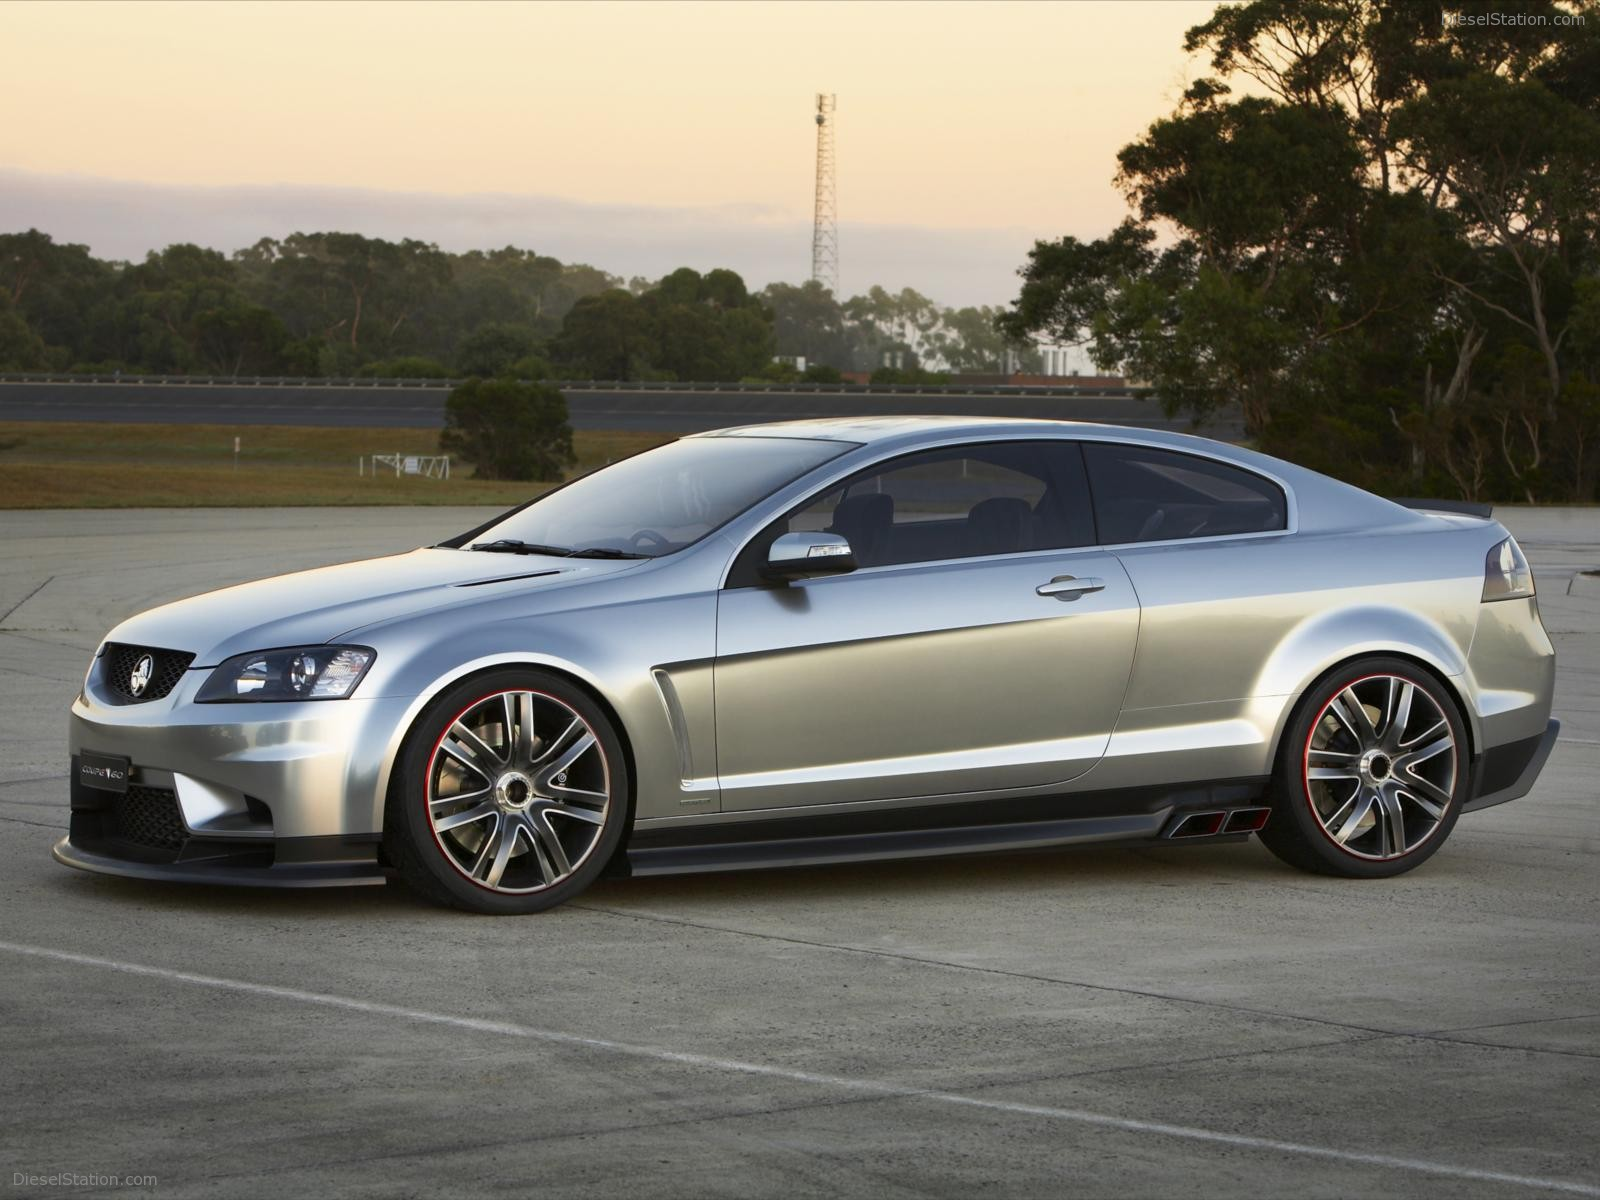 Holden coupe photo - 4